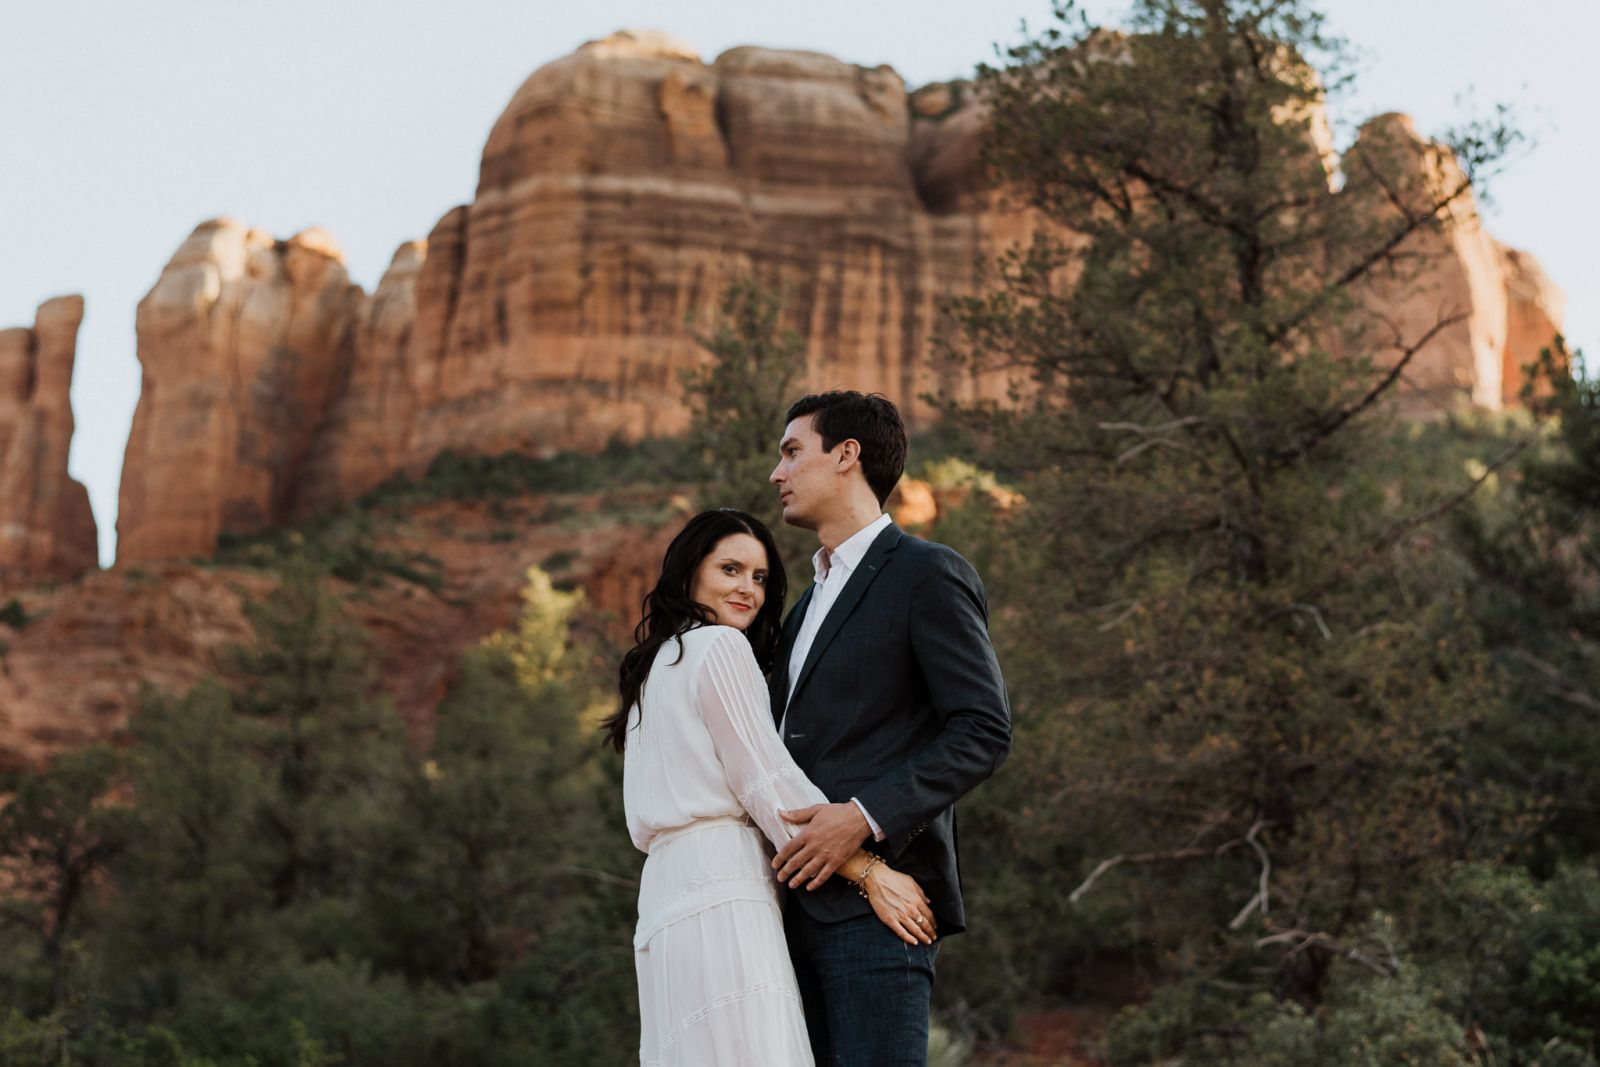 bride and groom in at castle rock in arizona